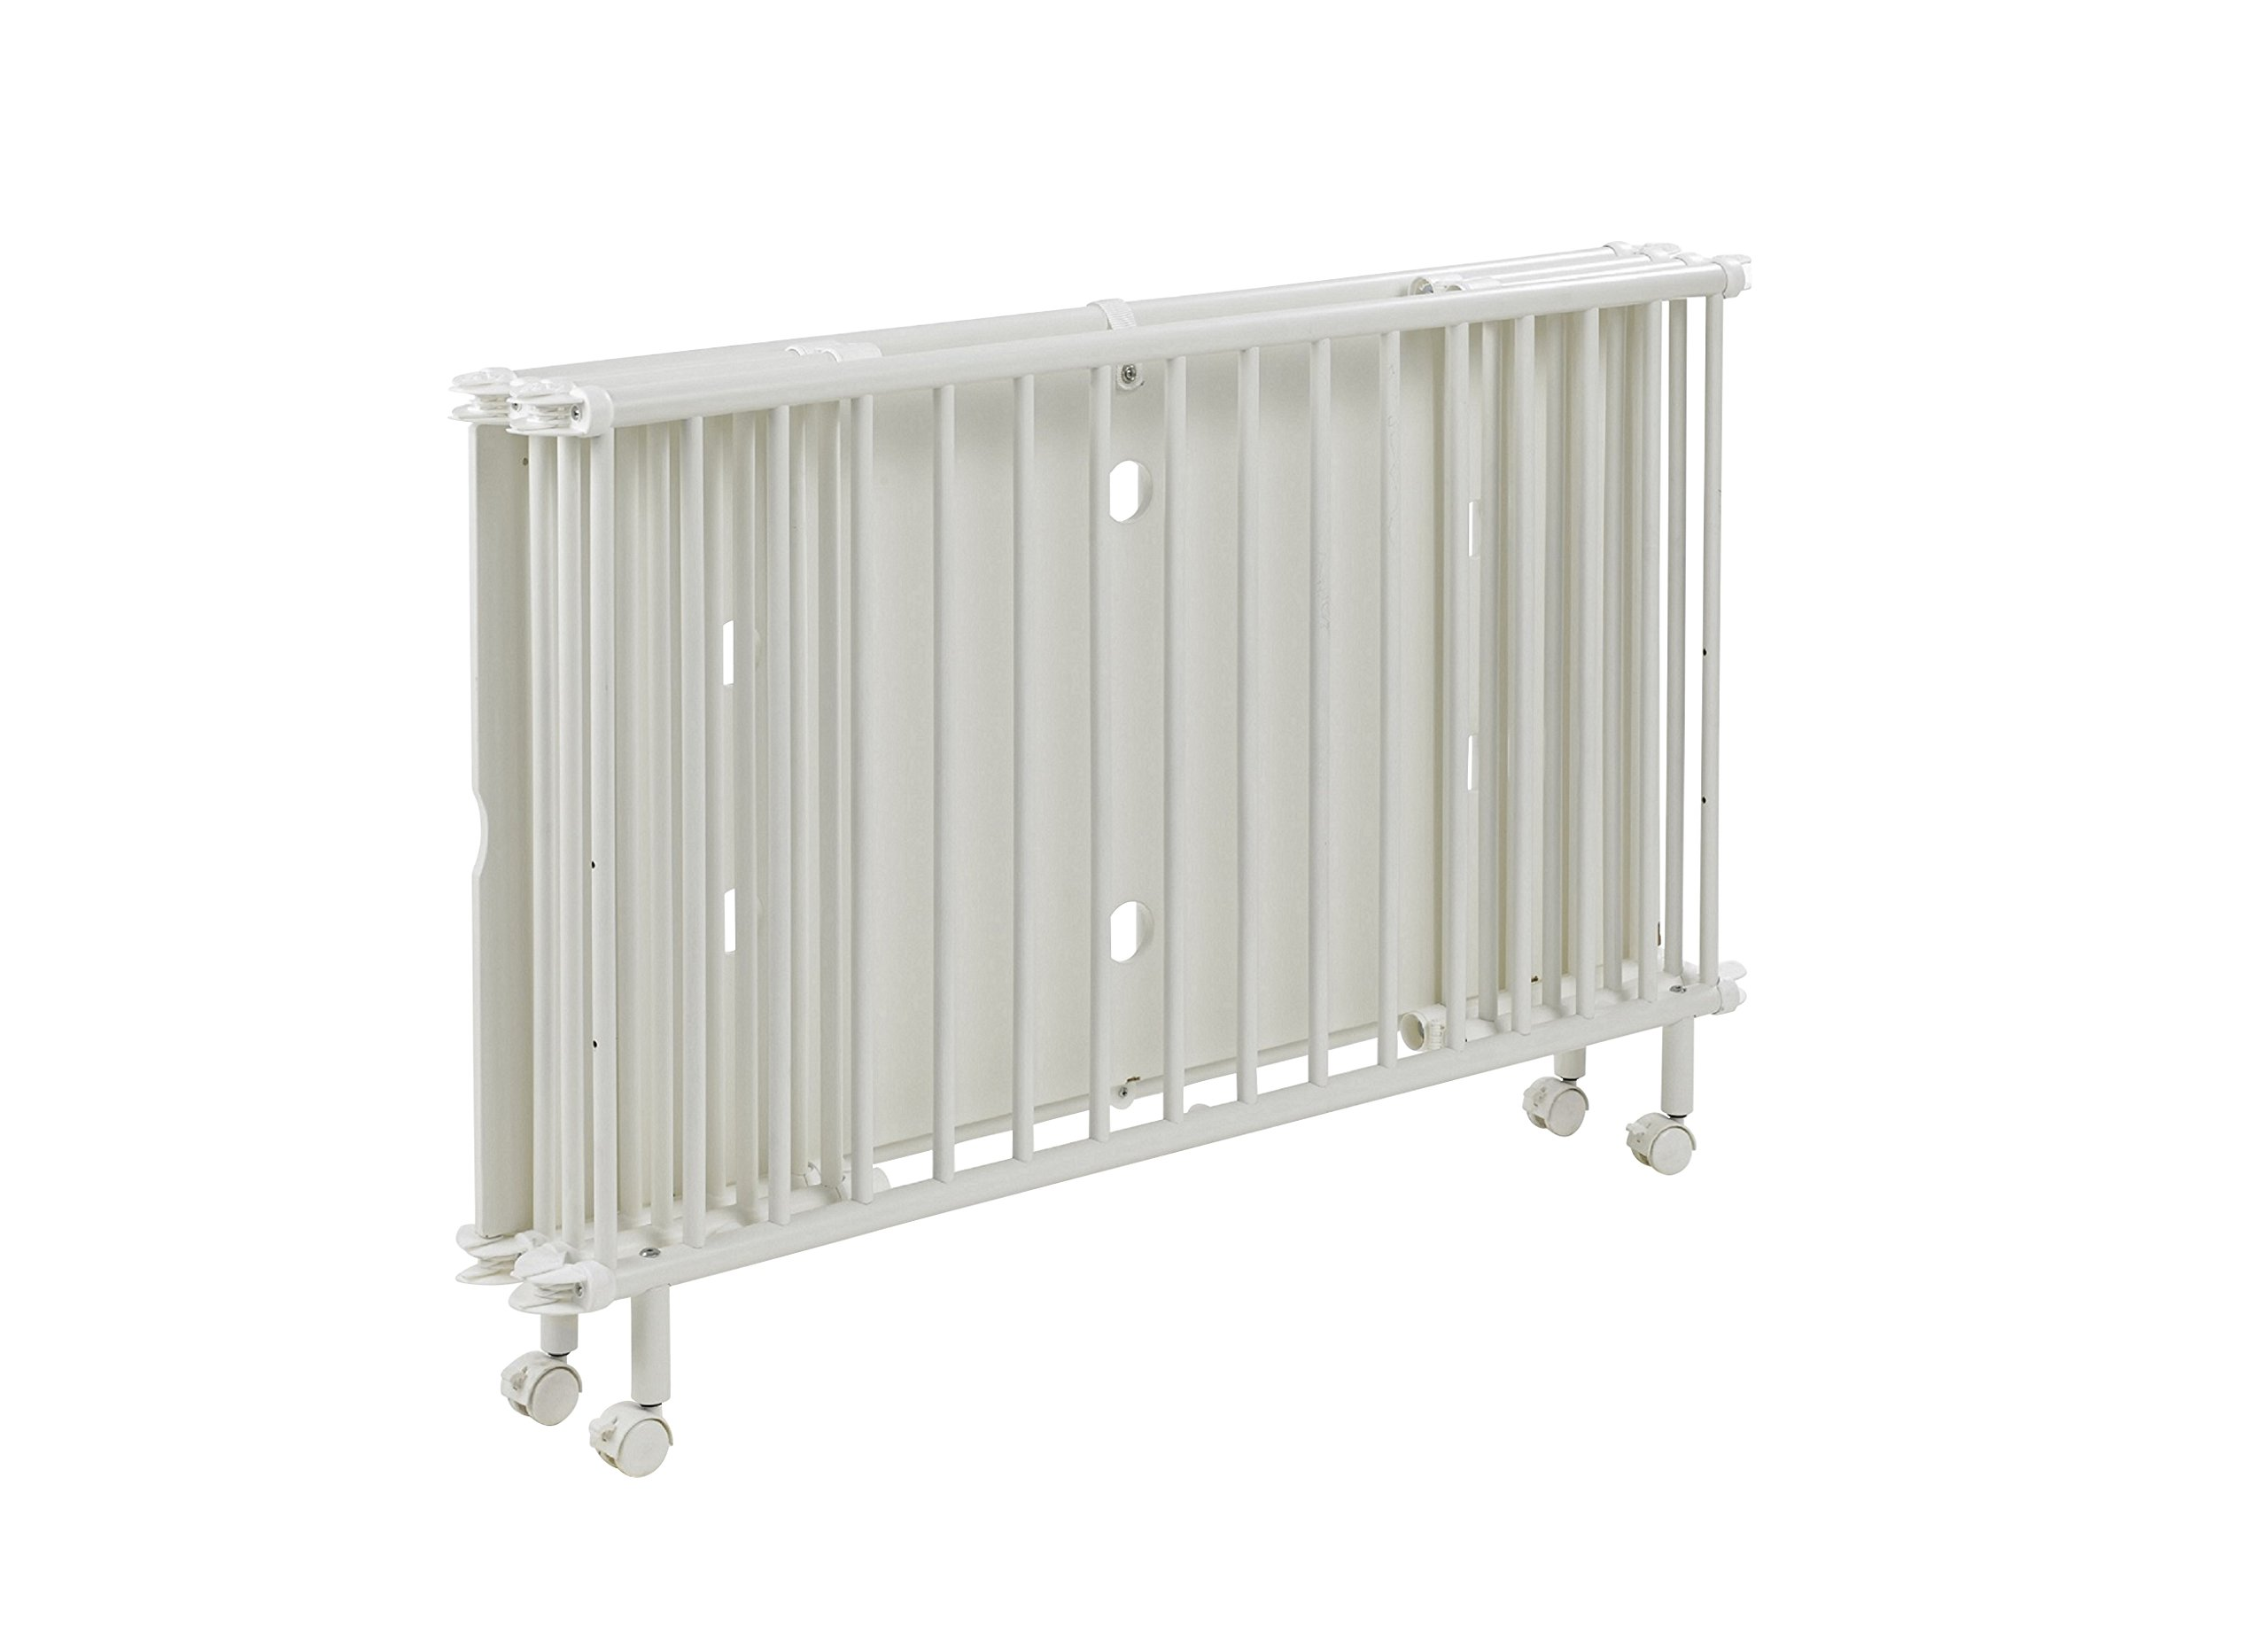 Geuther - Folding Wooden Cot Mayla (60 x 120 cm, White)  Innovative fold away wooden cot Compact foldable design for easy storage Four lockable wheels for simple transportation around the home 2